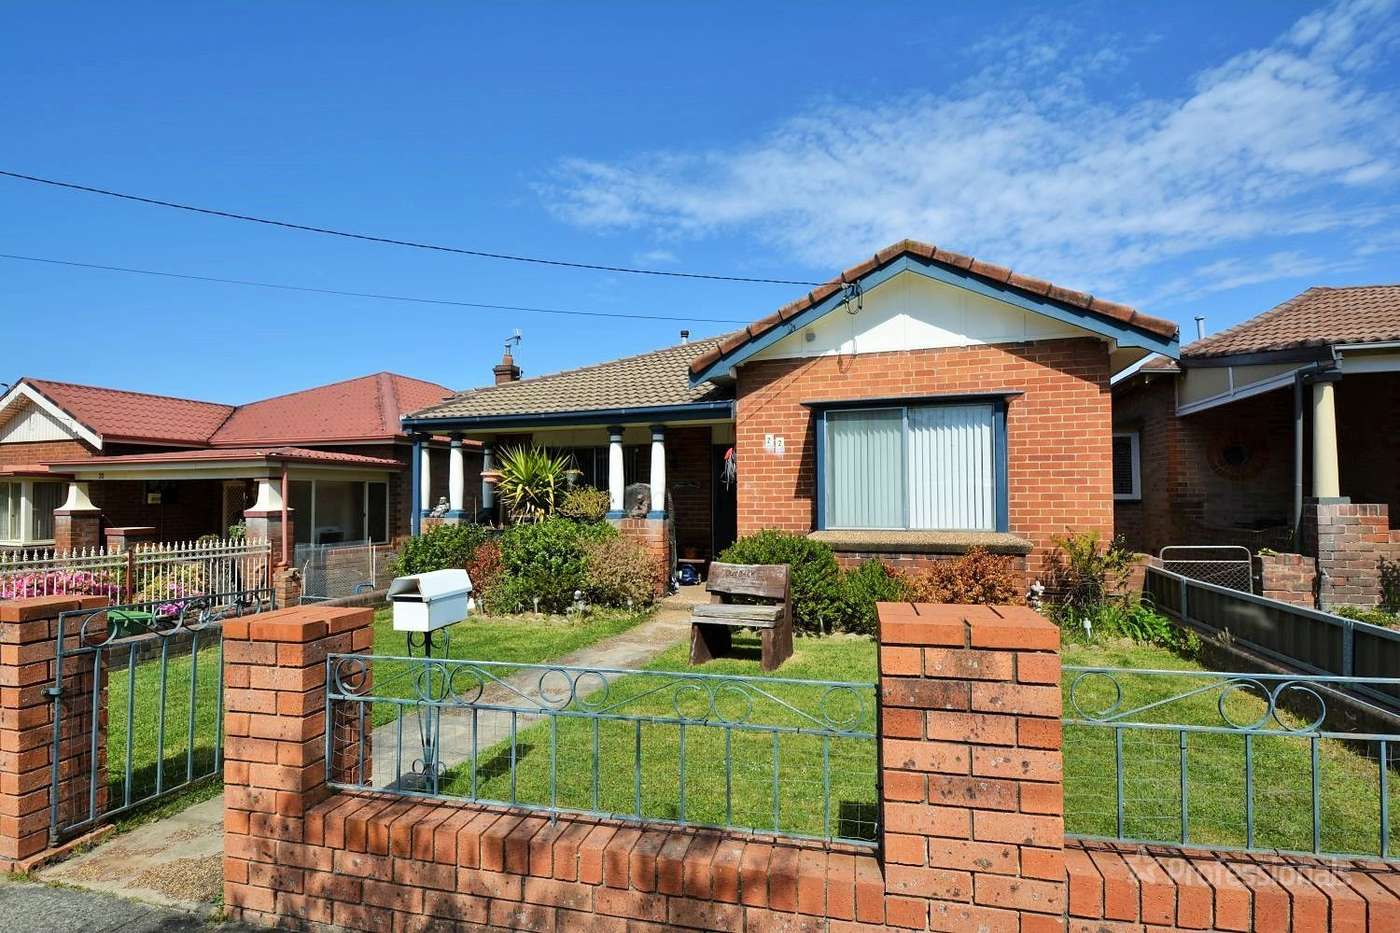 Main view of Homely house listing, 22 Padley Street, Lithgow, NSW 2790